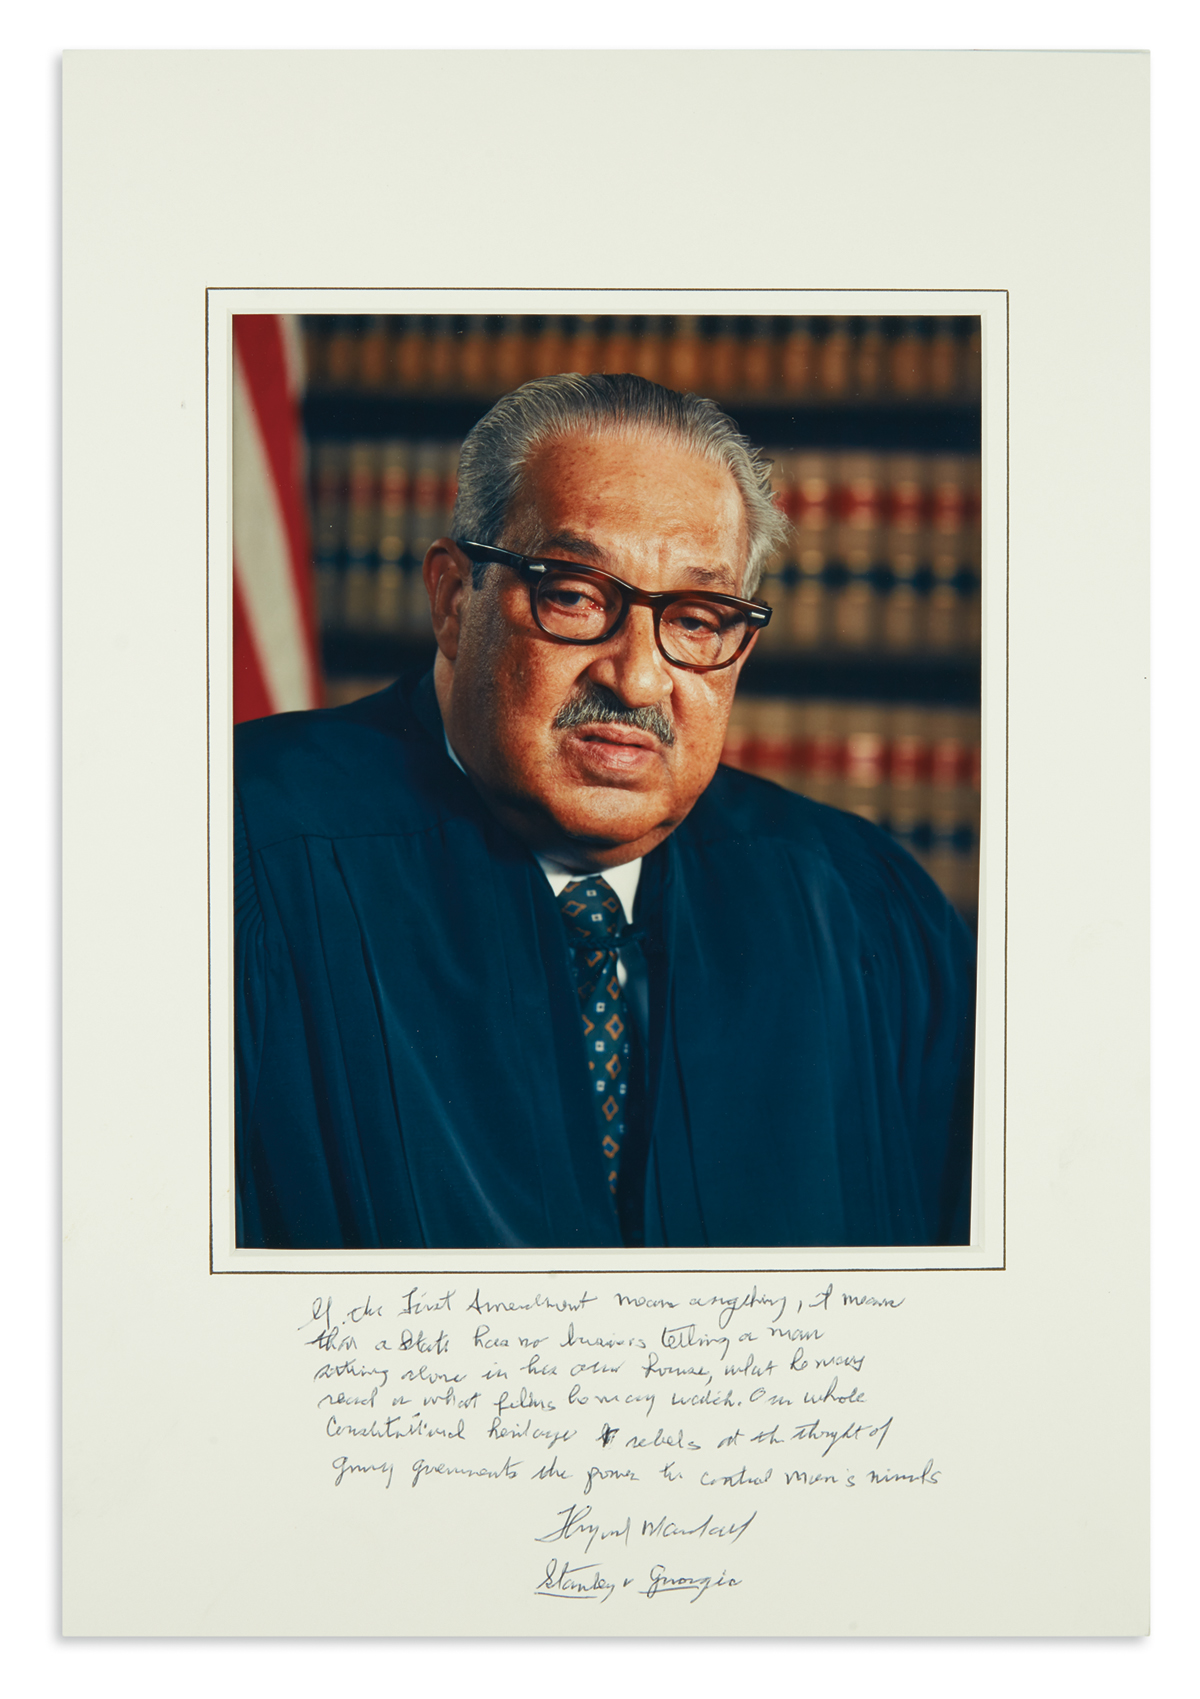 (LAW.) Autographed photograph of Justice Thurgood Marshall.